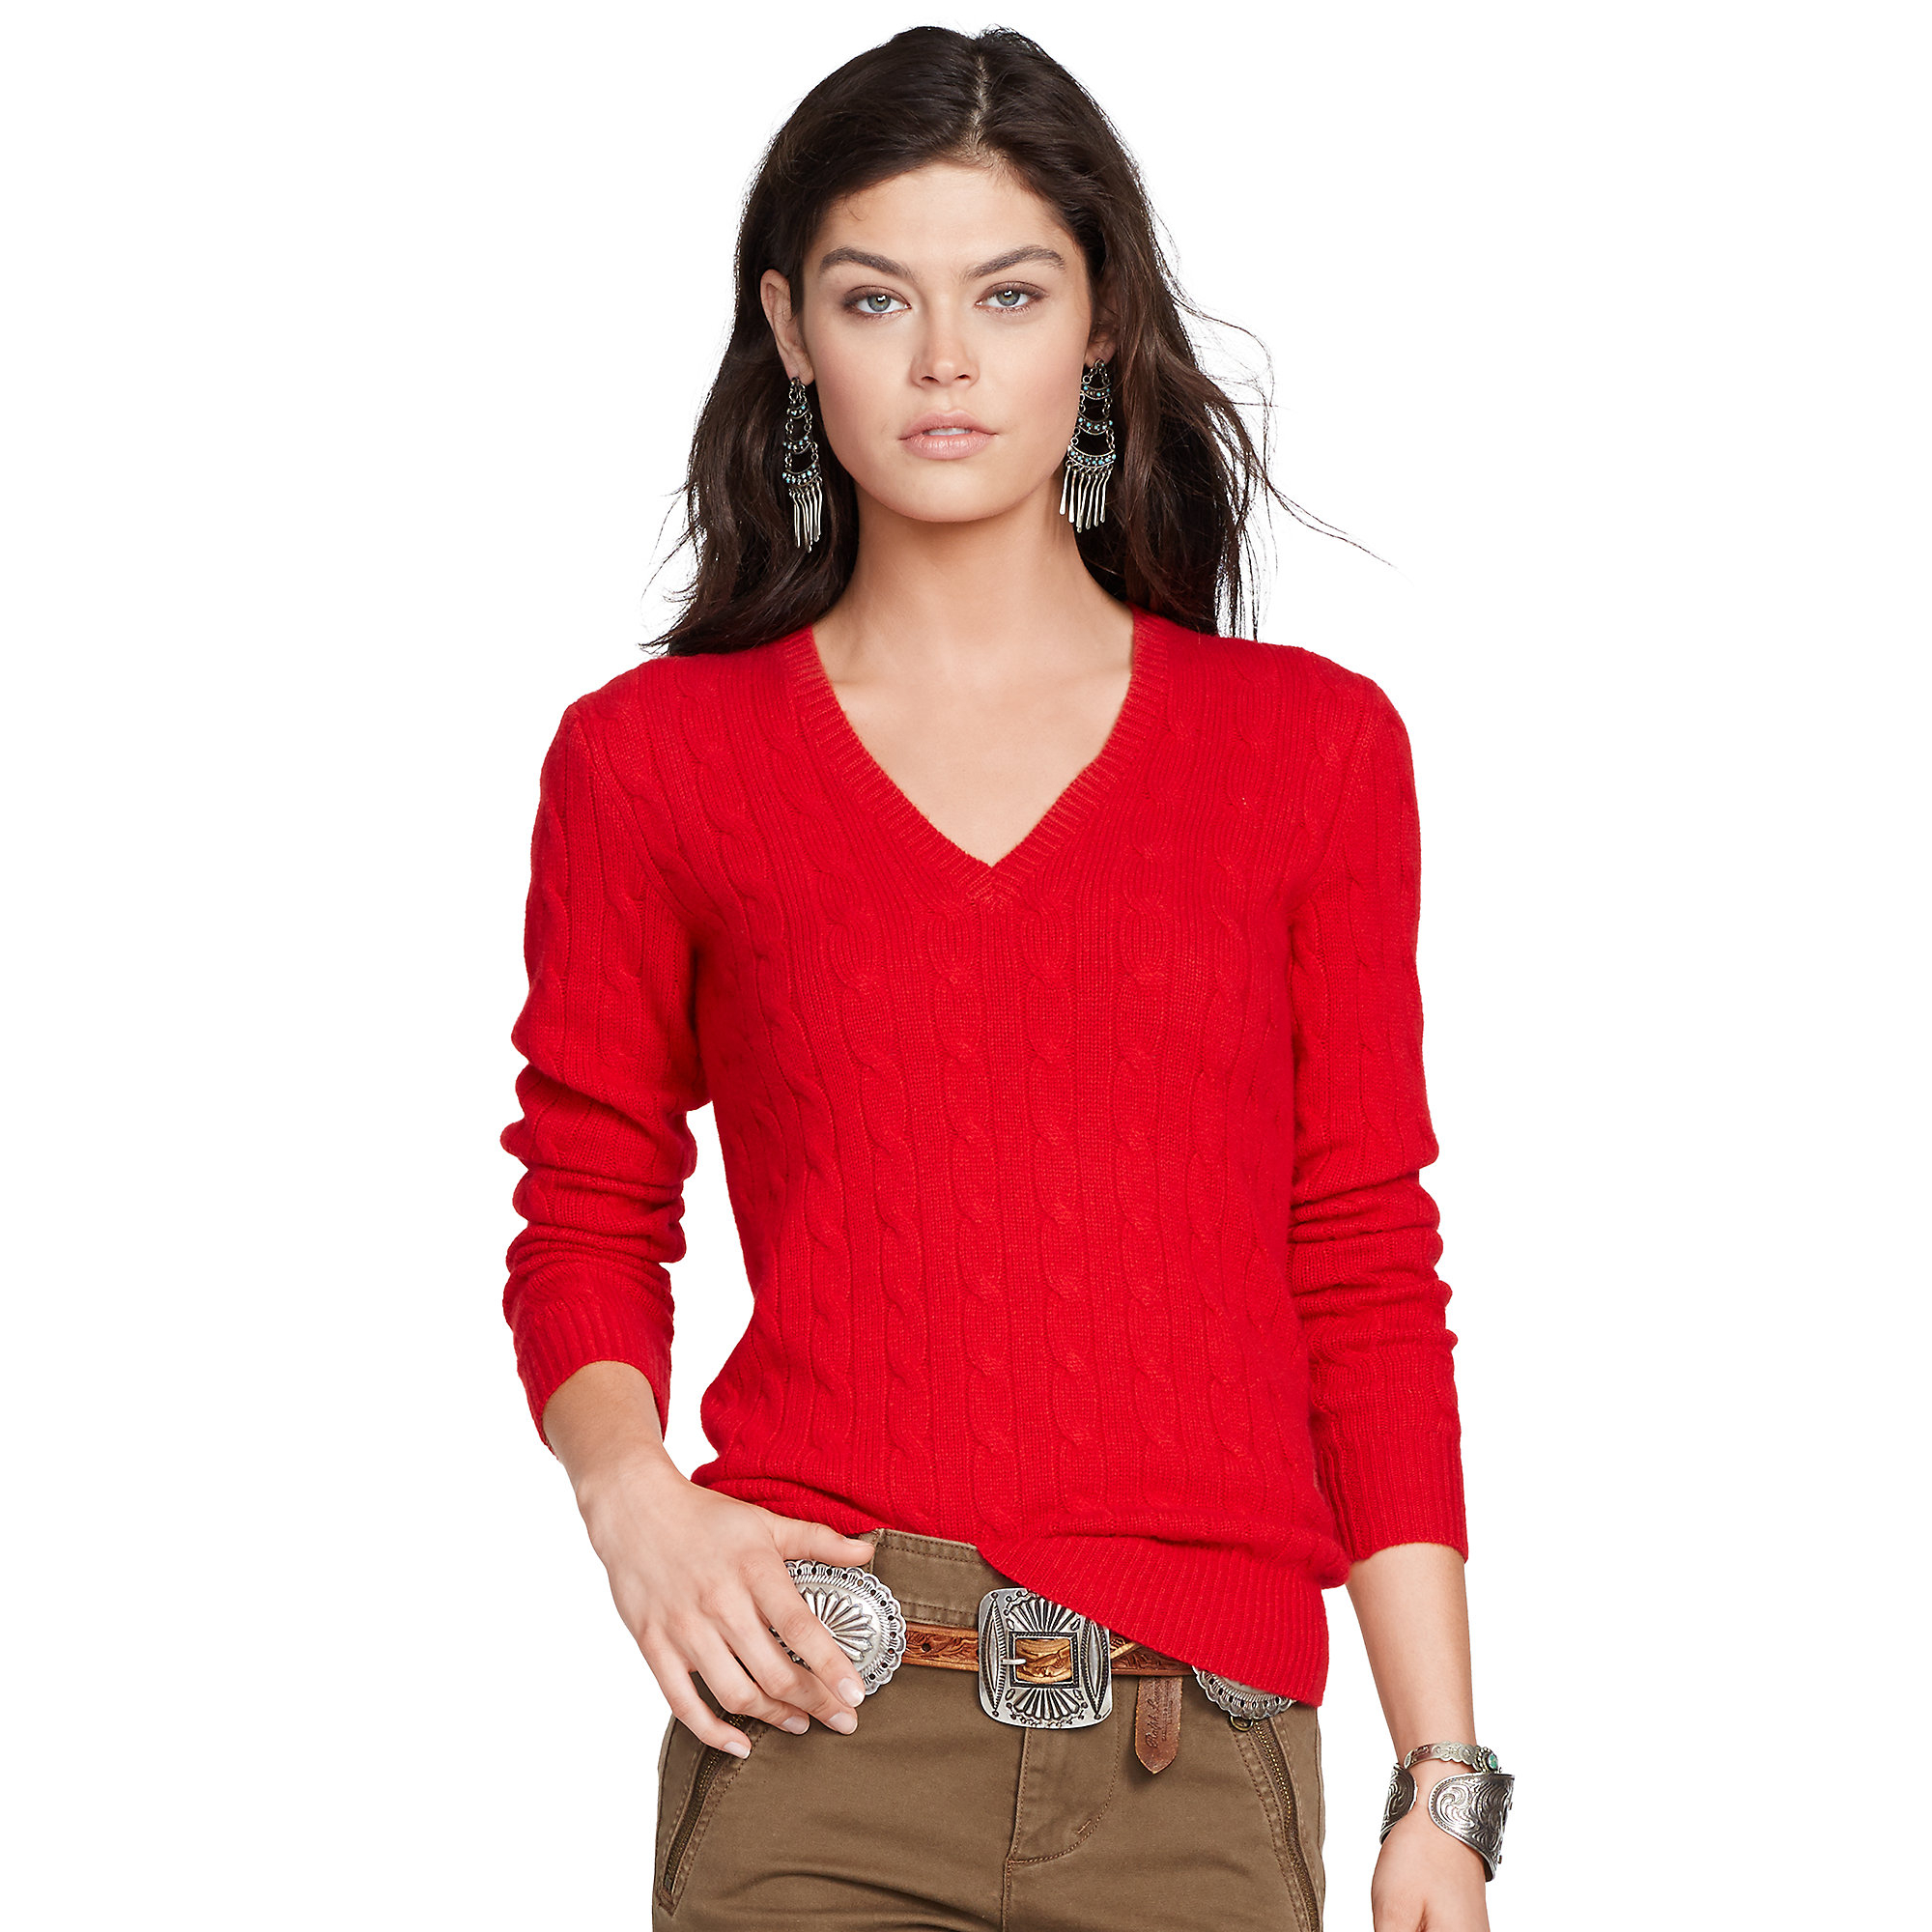 Polo ralph lauren Cabled Cashmere V-neck Sweater in Red | Lyst